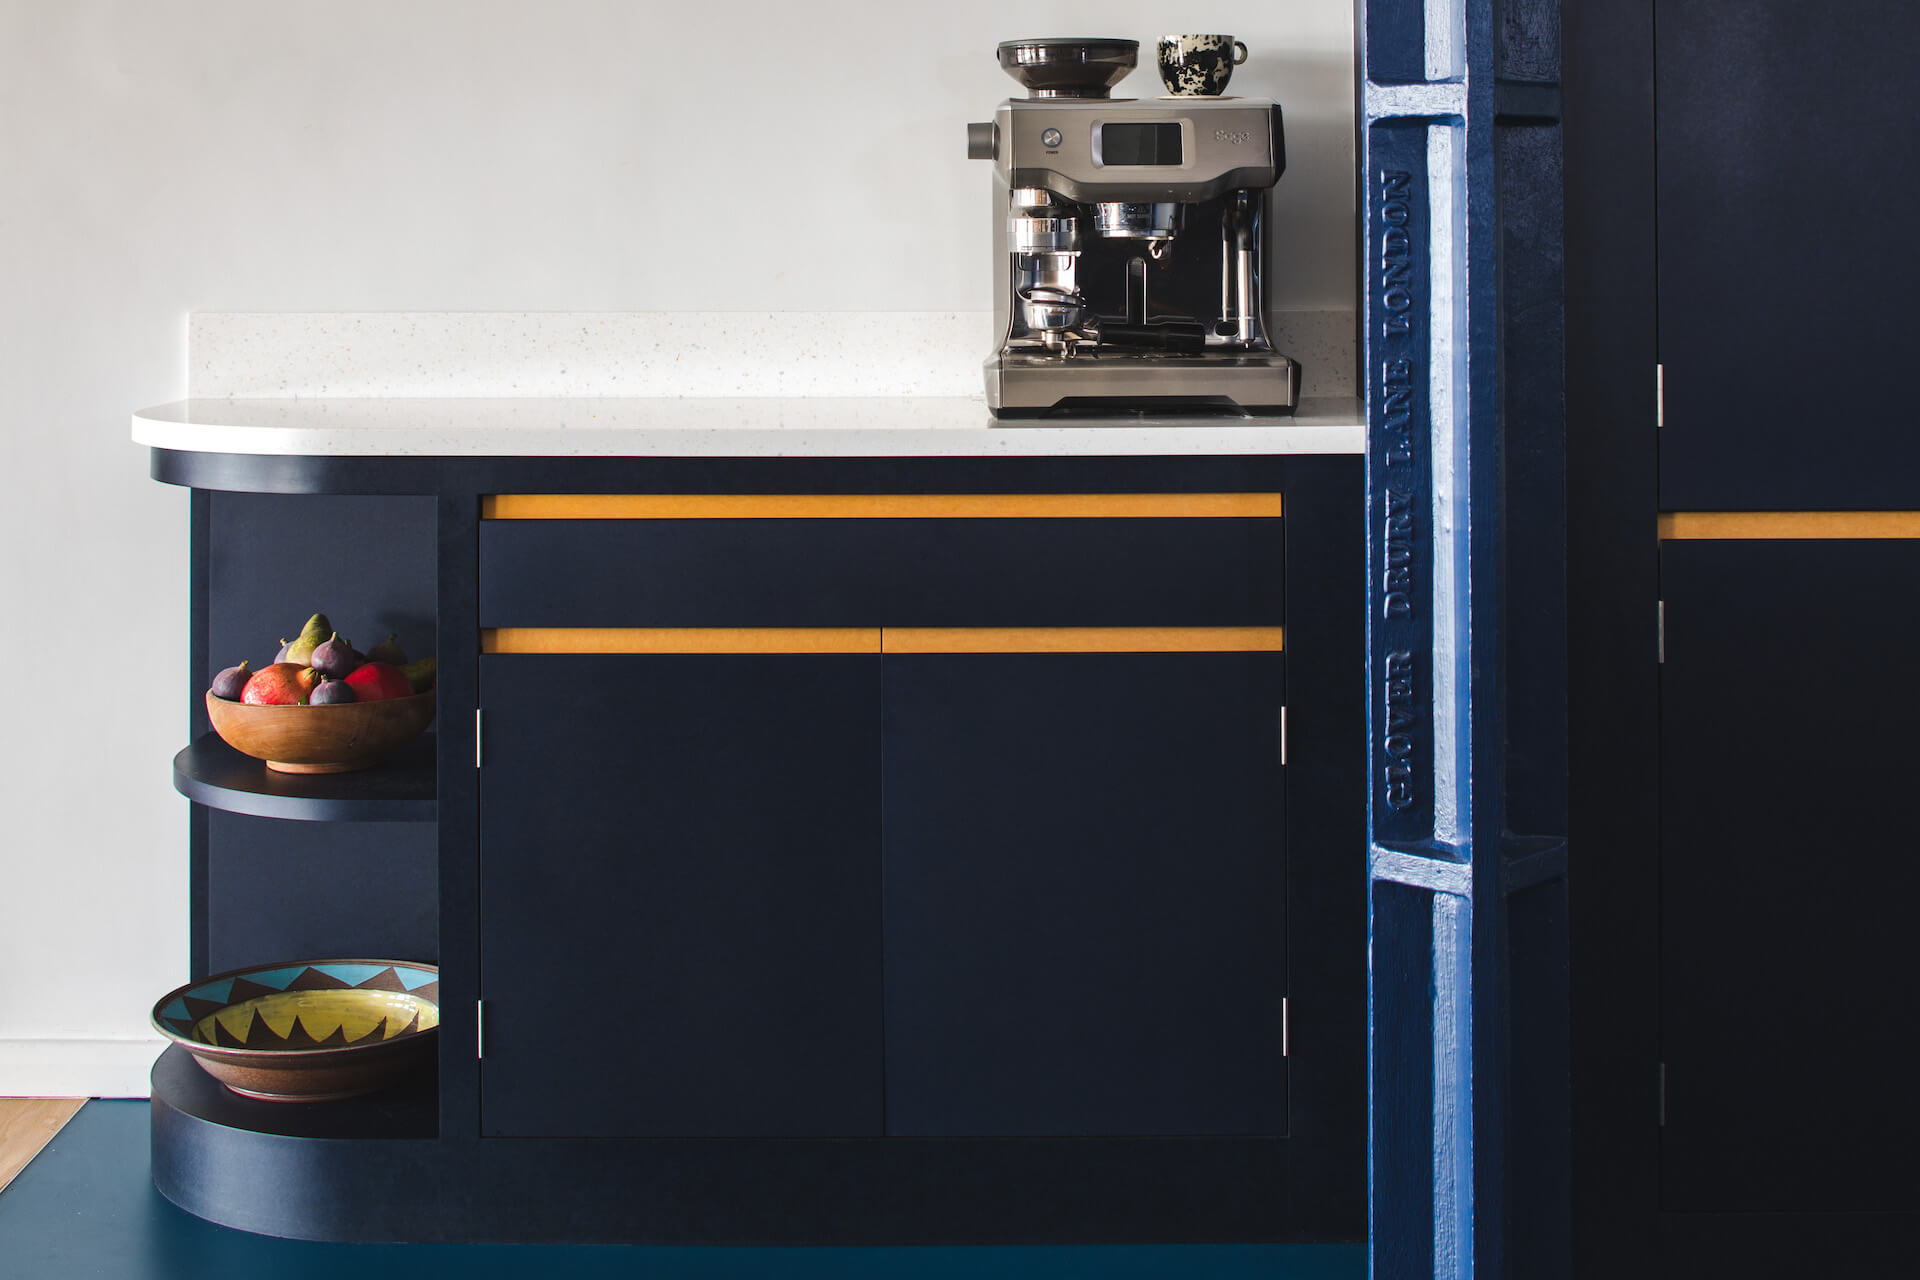 The Richlite Kitchen - Blue Canyon with Maple Valley handle details on oak core with corian worktop